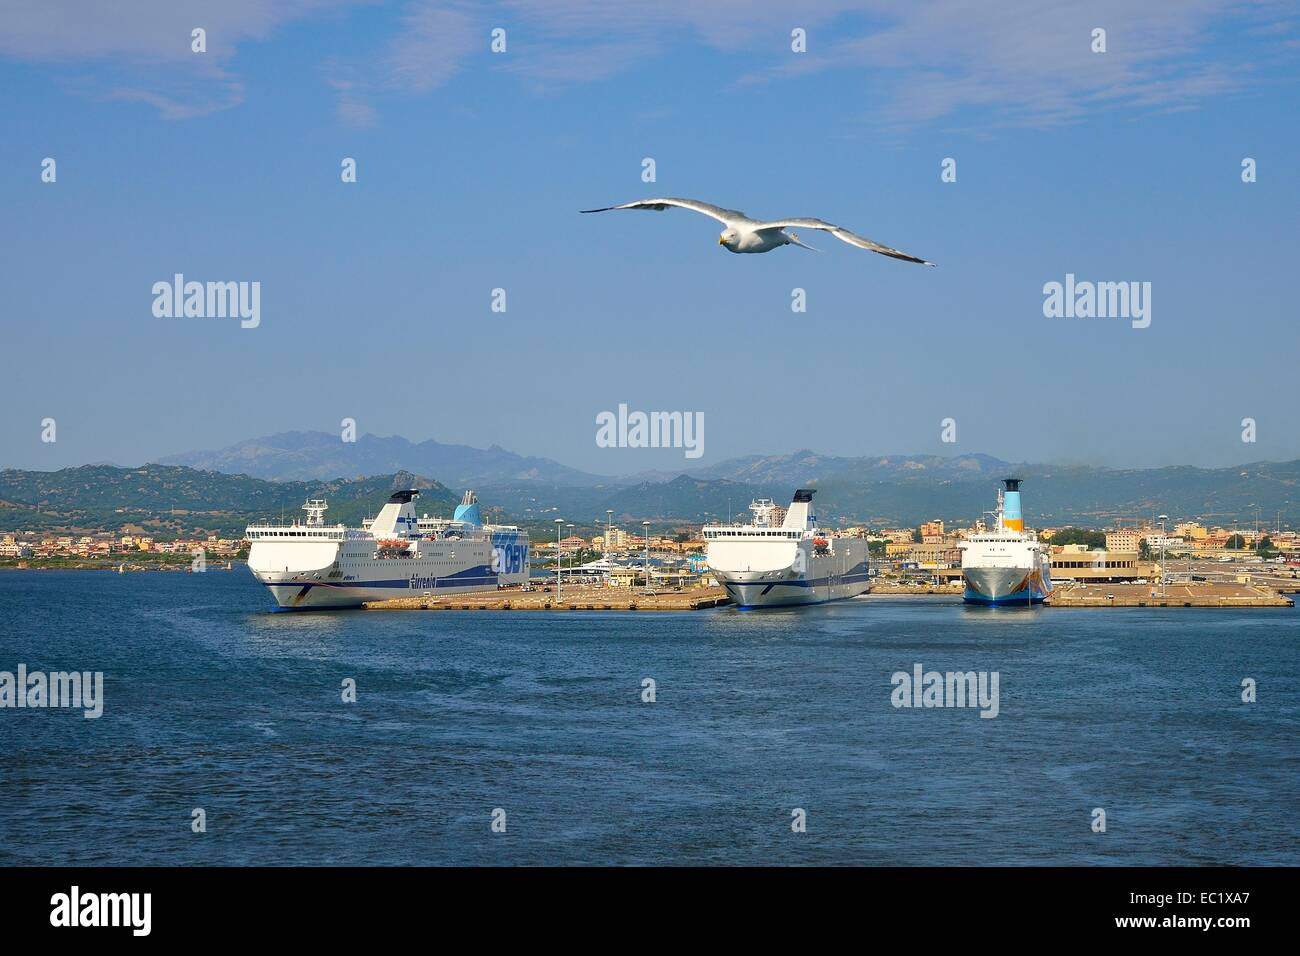 Ferries at the pier in Ferry, Olbia, Province of Olbia-Tempio, Sardinia, Italy Stock Photo